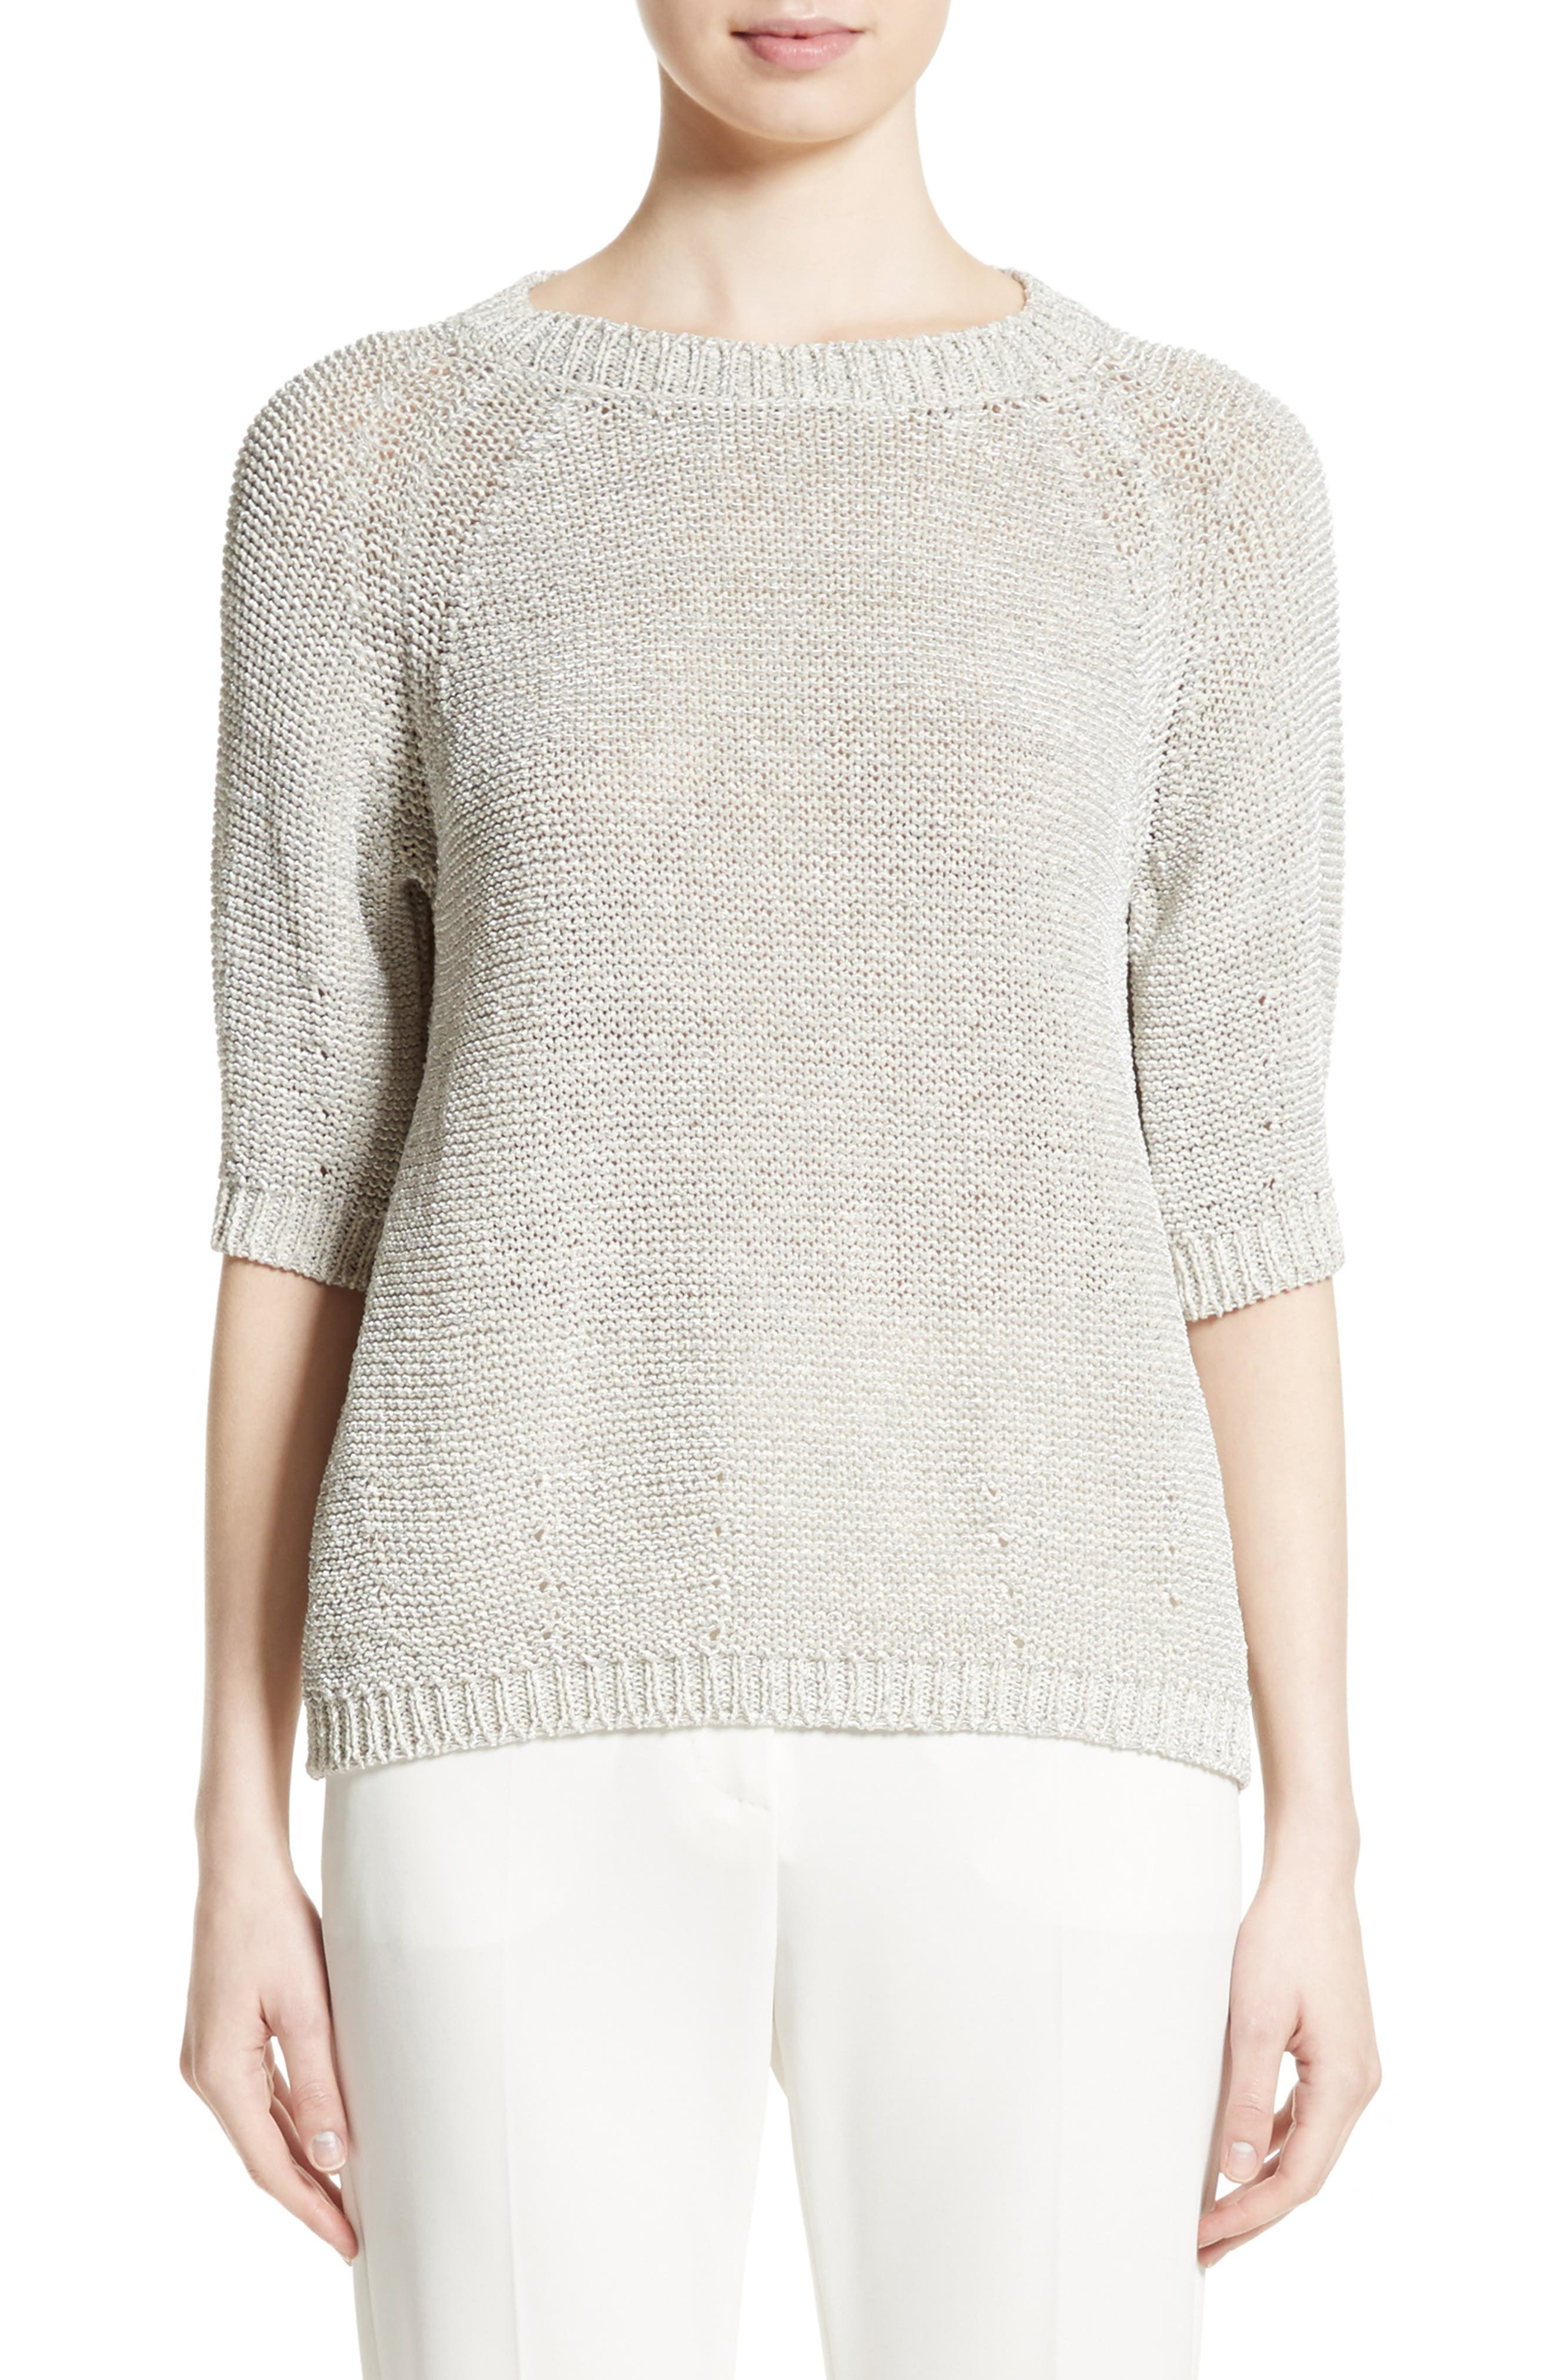 Cotton Blend Sweater,                             Main thumbnail 1, color,                             White